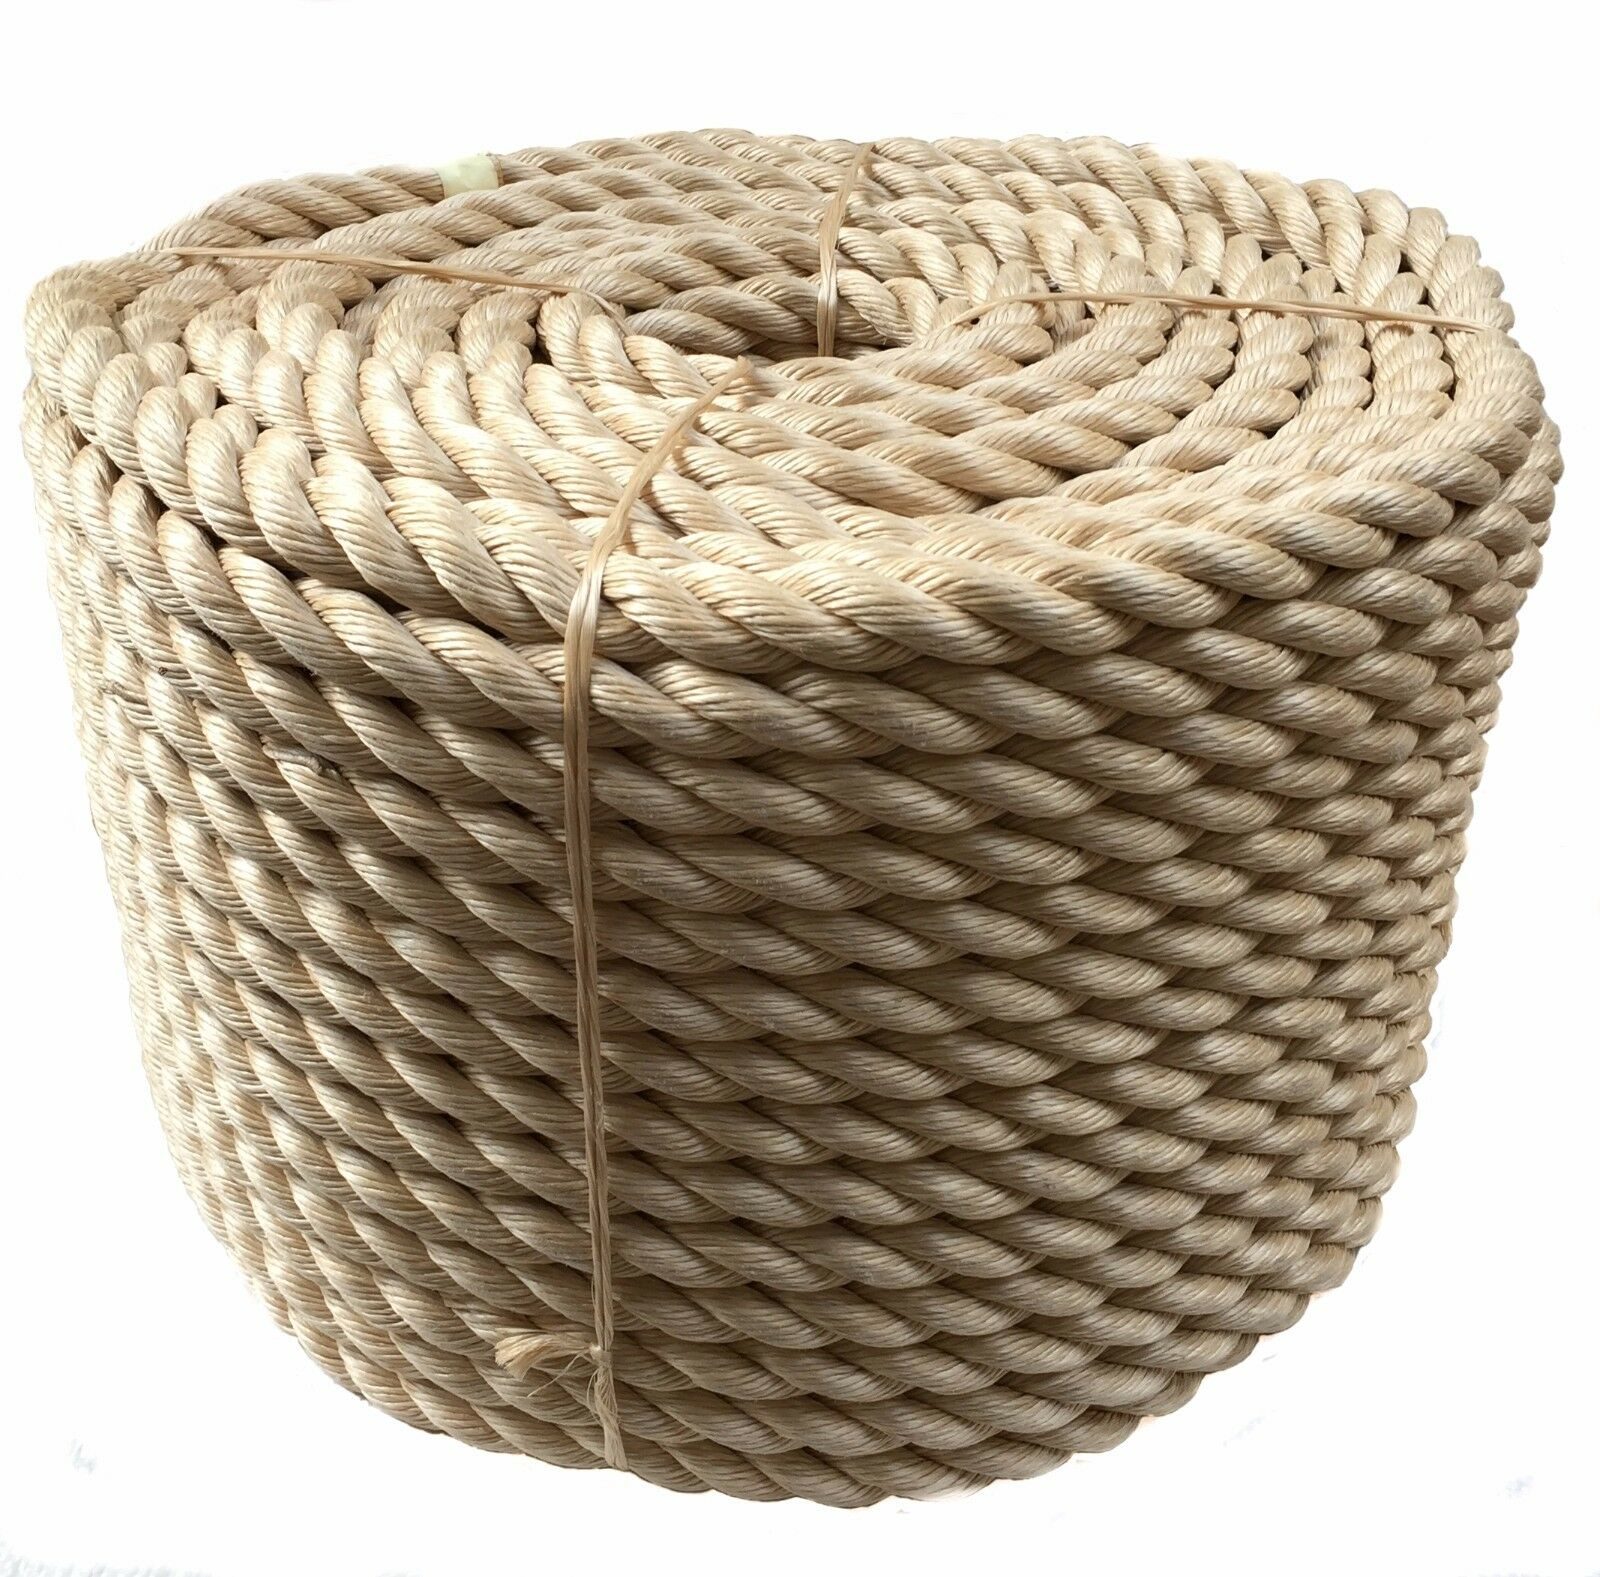 40mm x 7 Metres Synthetic Sisal 3 Strand Decking Rope, Sisal Rope, Decking